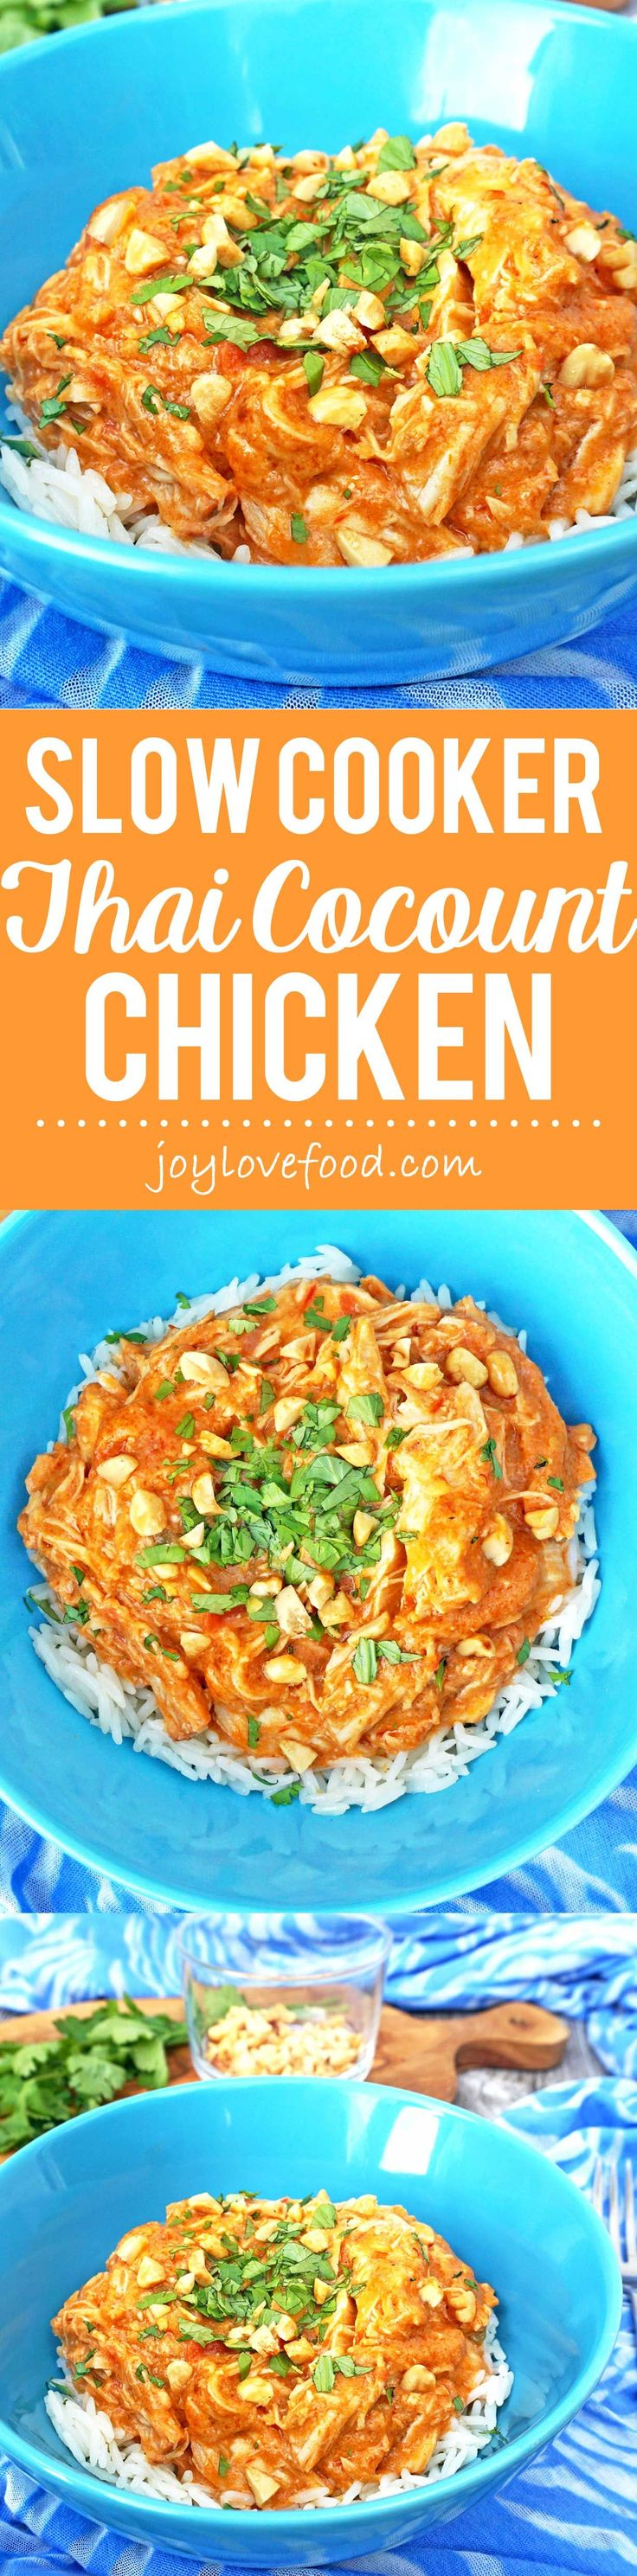 Chicken becomes fall apart tender when simmered for hours in a fragrant Thai inspired coconut and peanut sauce. Serve over rice for a delicious meal the whole family will enjoy.